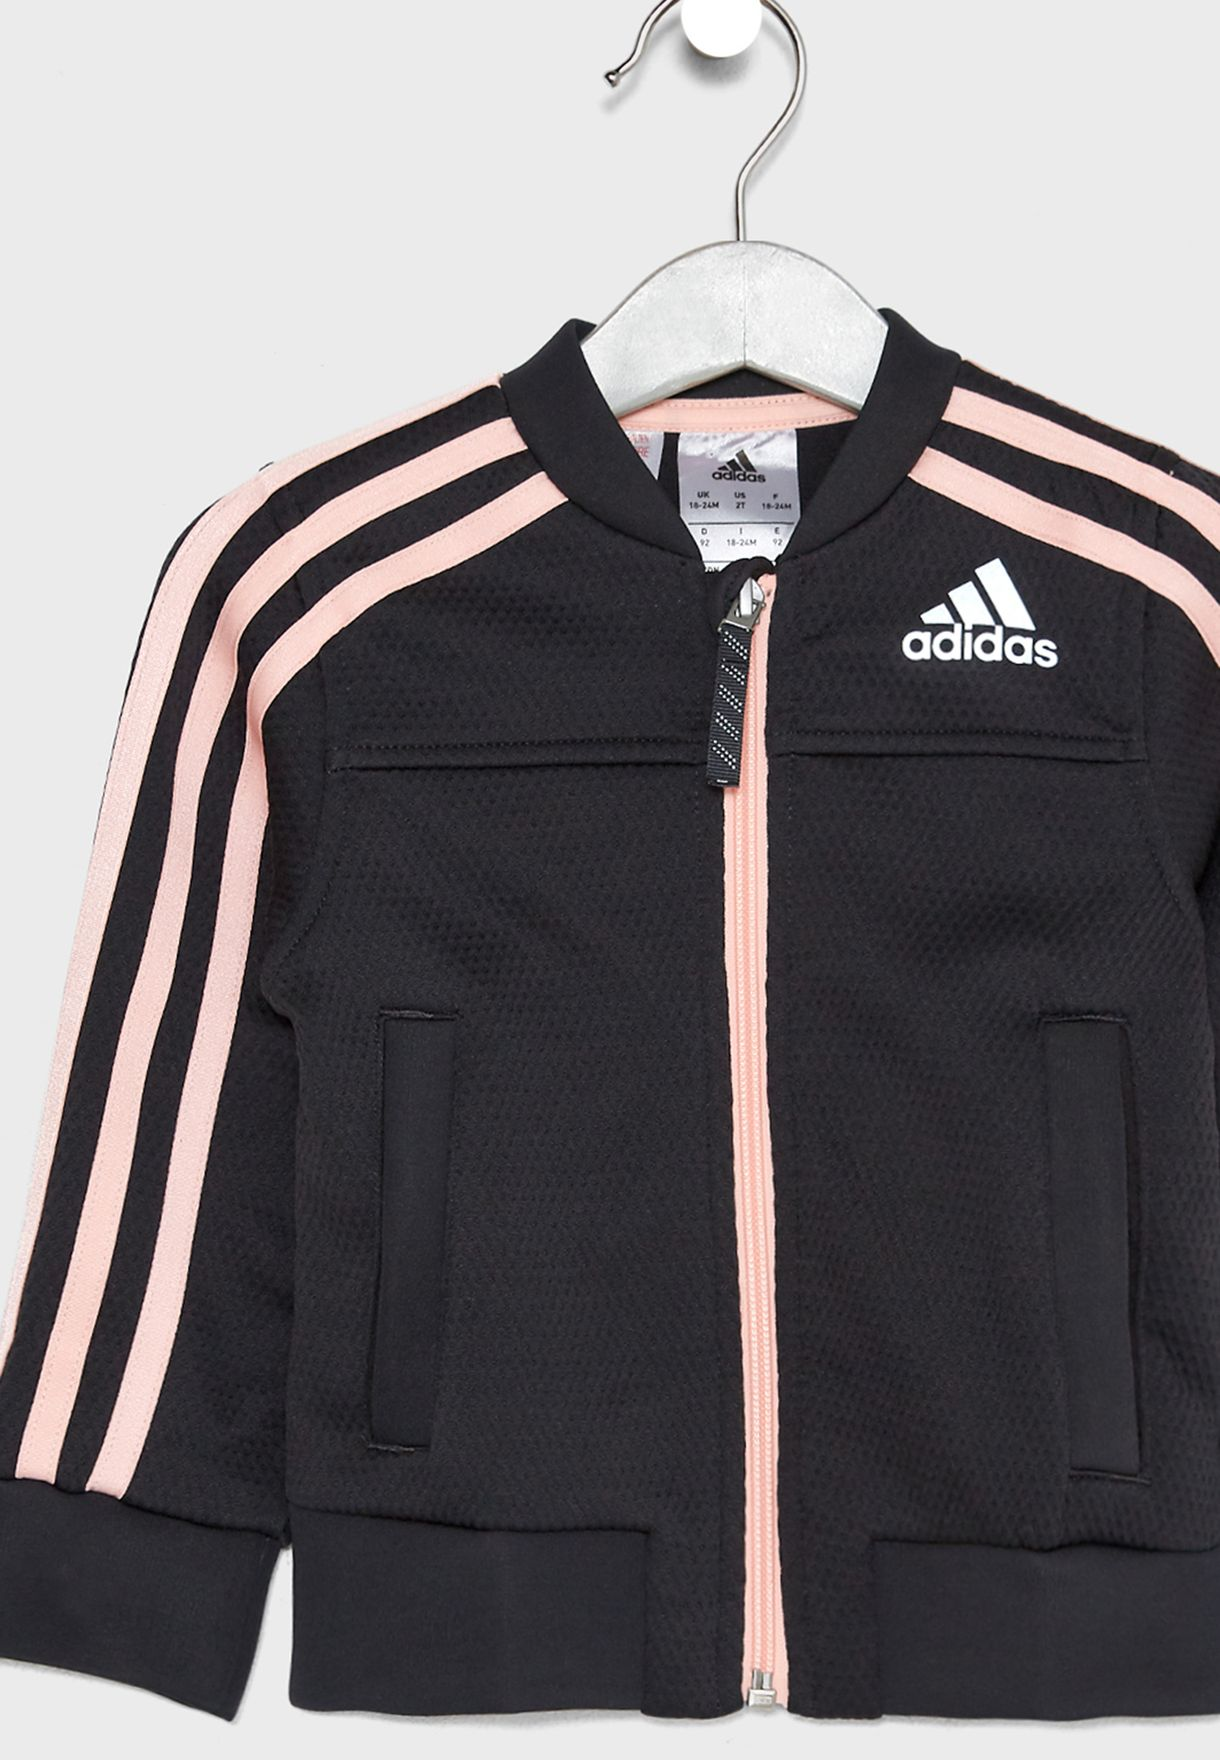 adidas PES Cover Up Jacket Childrens Girls Tracksuit Top Coat Full Length Sleeve